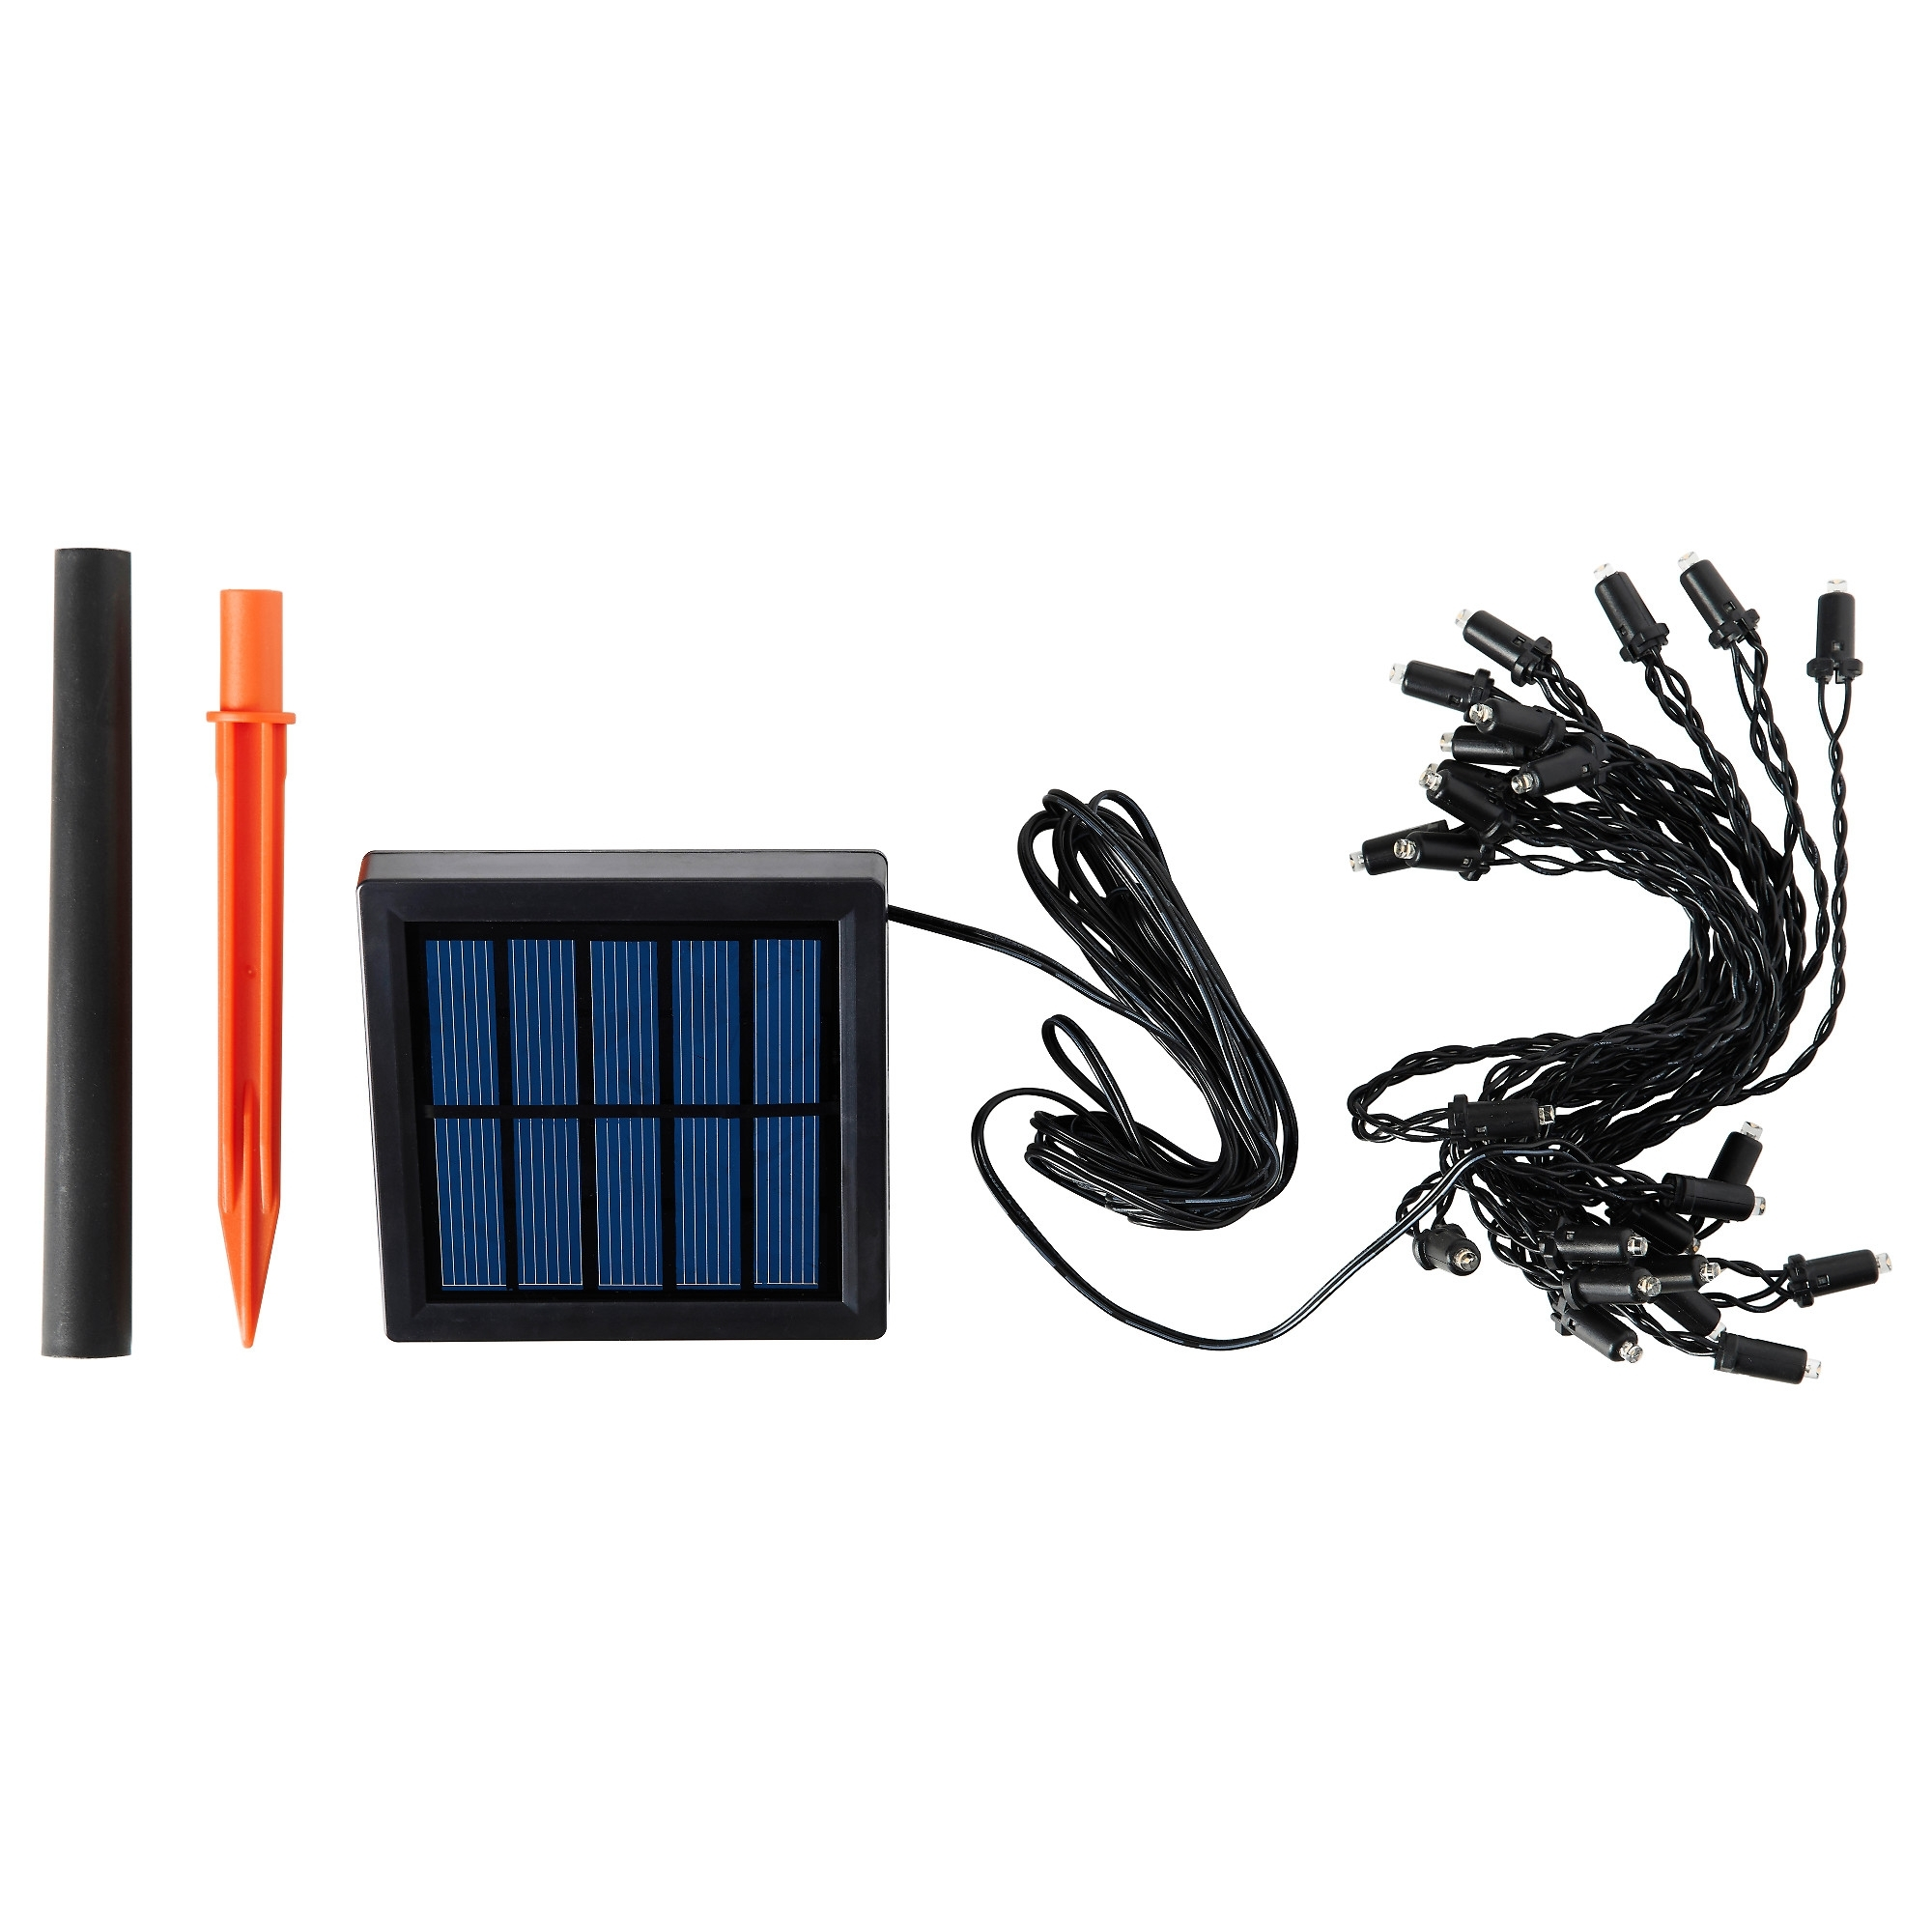 Solarvet Led String Light With 24 Lights – Ikea With Ikea Battery Operated Outdoor Lights (#13 of 15)